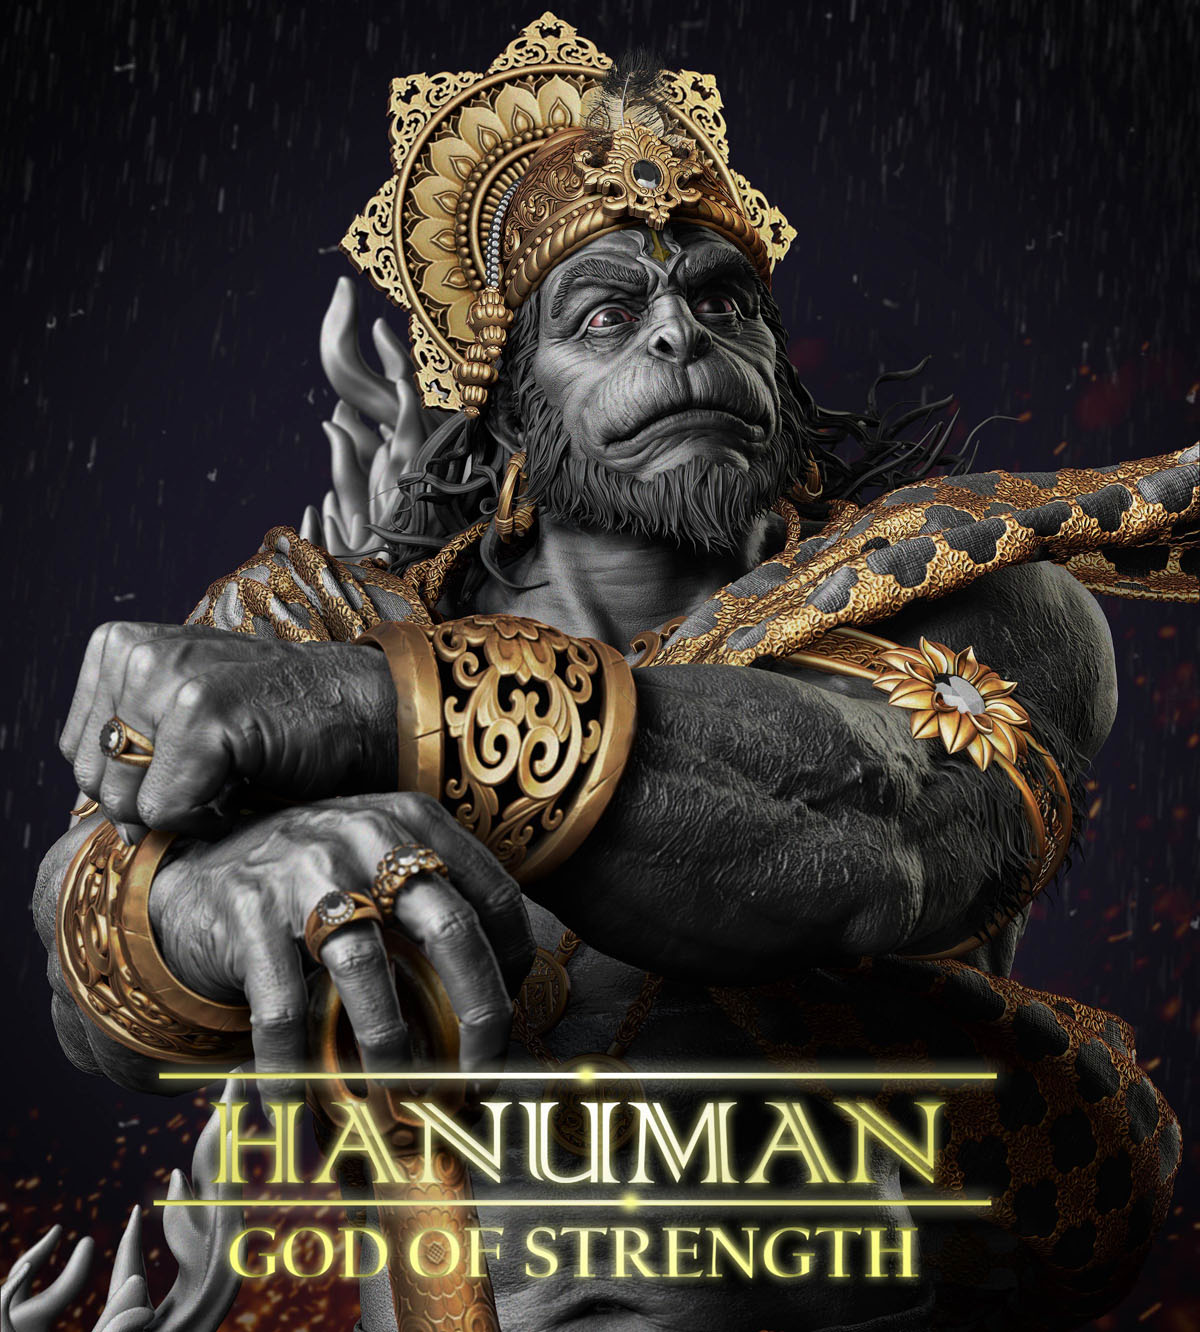 zbrush model god hanuman by gaurav kumar